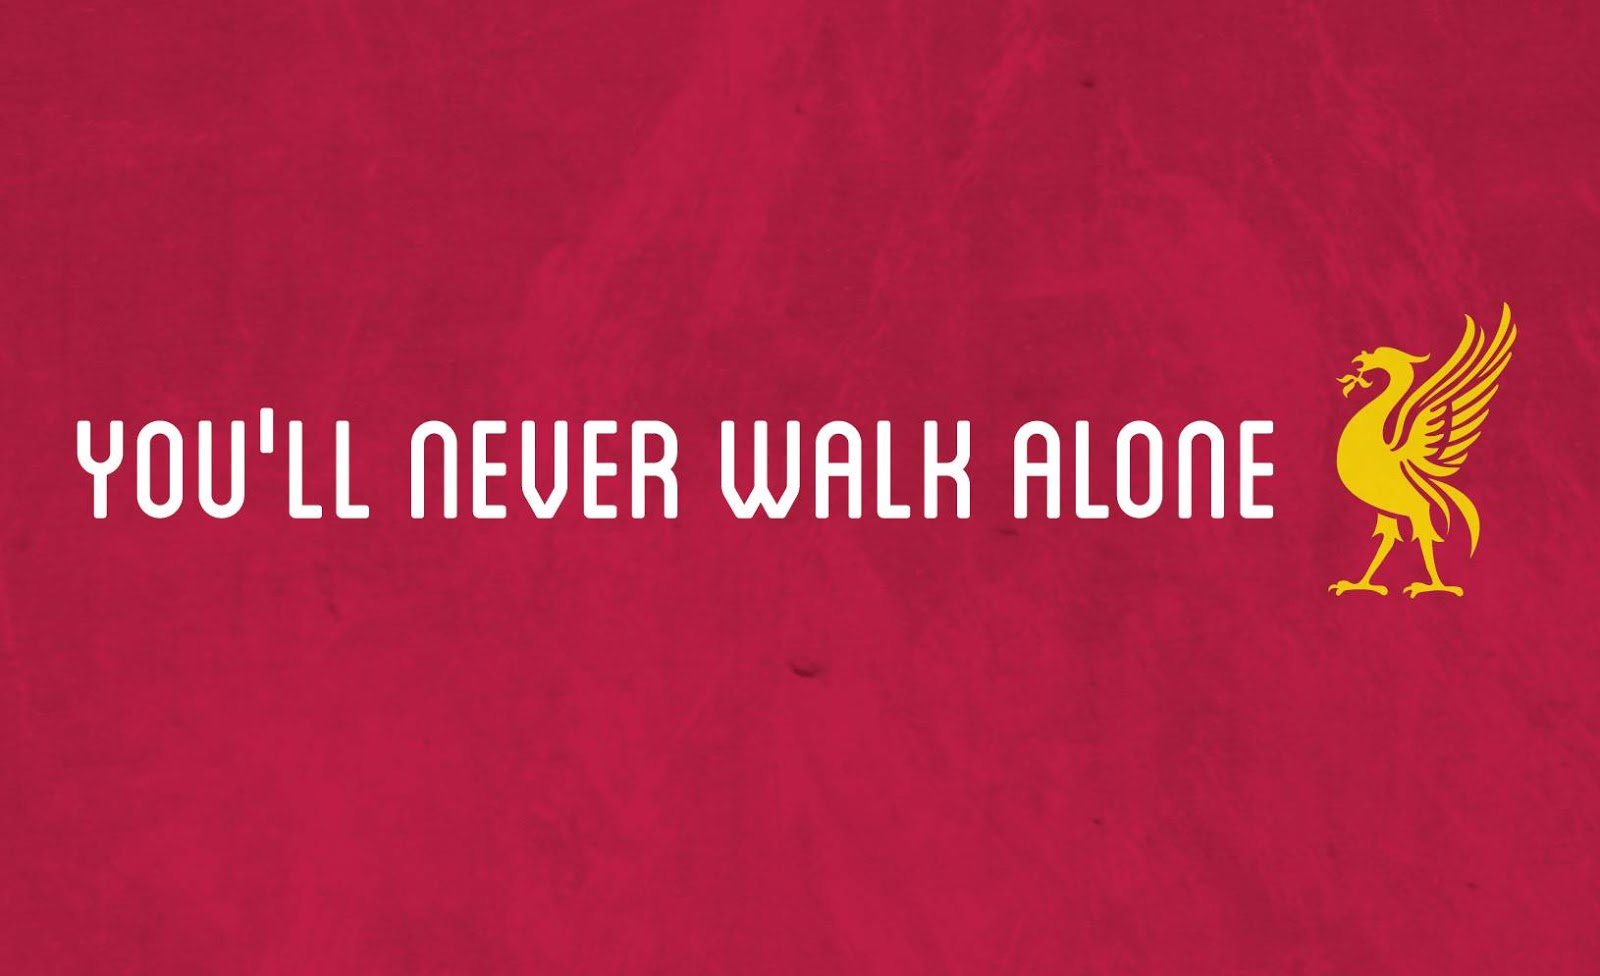 Youll-never-walk-alone-written-on-plain-red-background